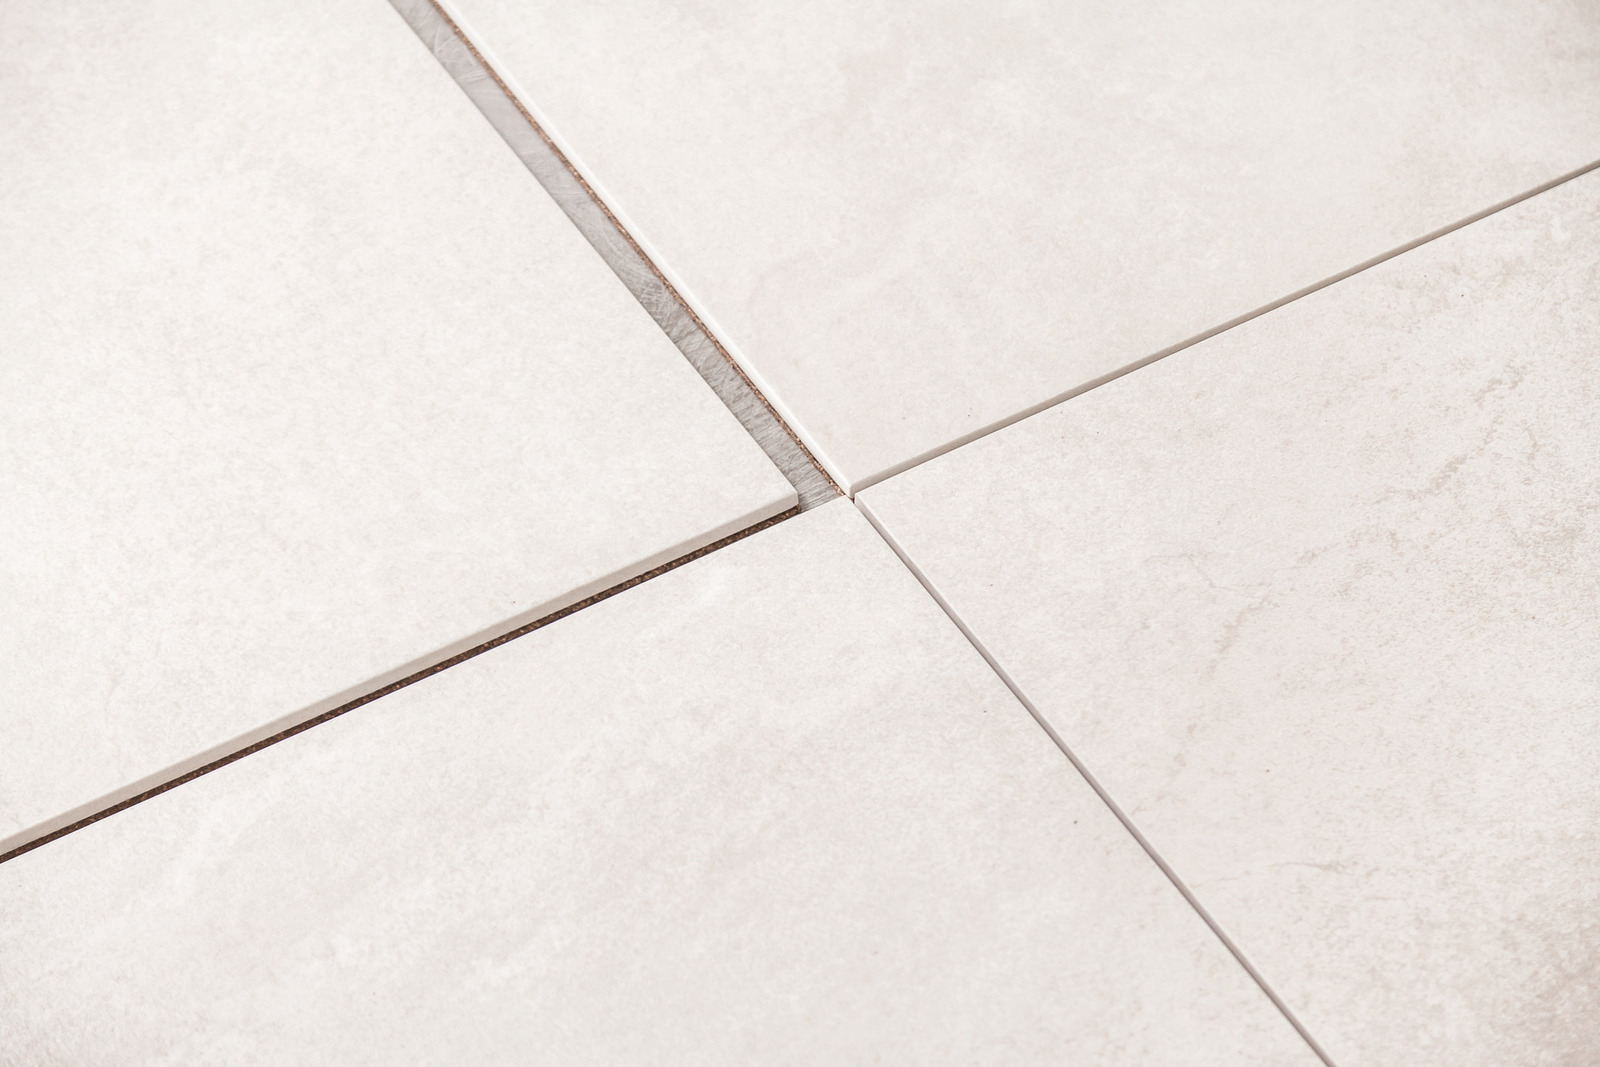 DryTile - install tile fast without mortar or adhesives. Cork backed tile